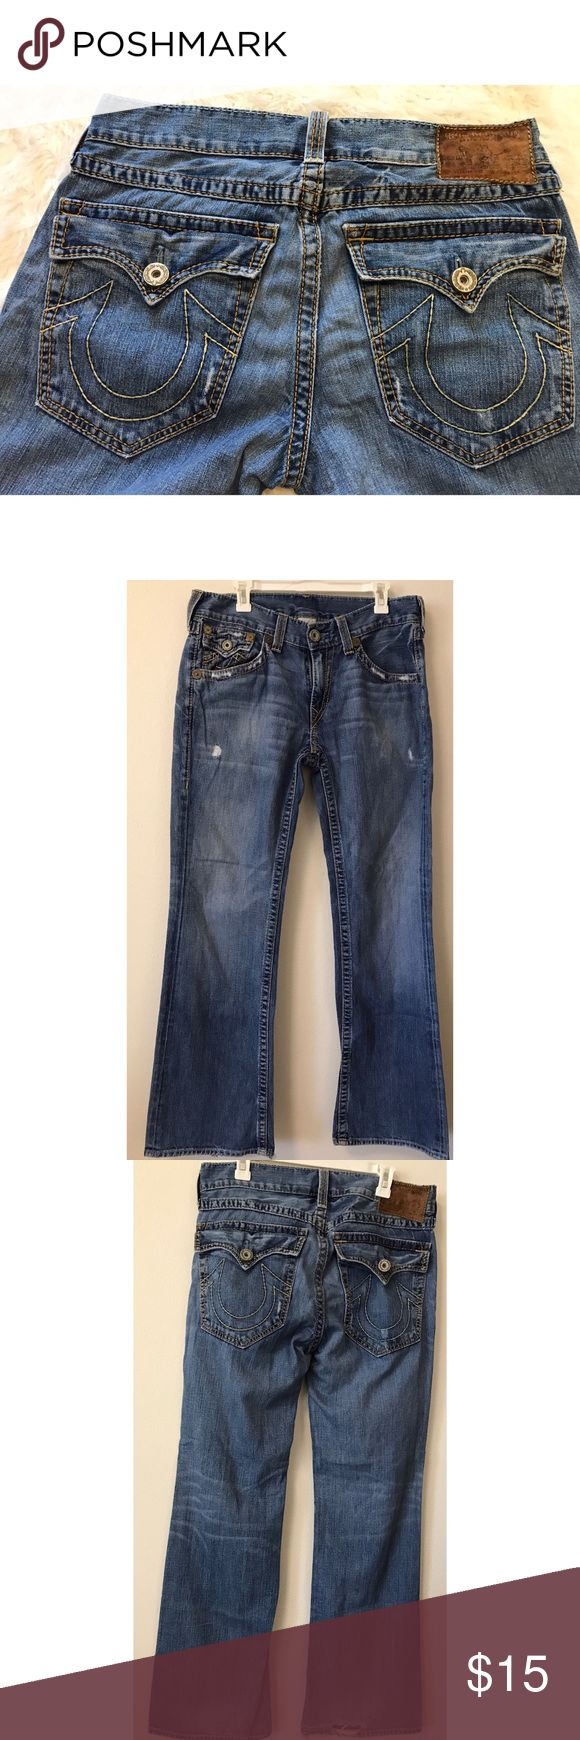 Men's True Religion Jeans • 34 -Bundle & save!!  -Check out my other listings for more great deals!  -NO TRADES OR HOLDS -I try my best to do next day shipping  ❌❌❌PLEASE DO NOT BUNDLE ANY OF THE LOTS TOGETHER, the shipping weight will be over the limit and I will cancel your order. If you have any questions  - please ask!  ❌❌❌ True Religion Jeans Bootcut